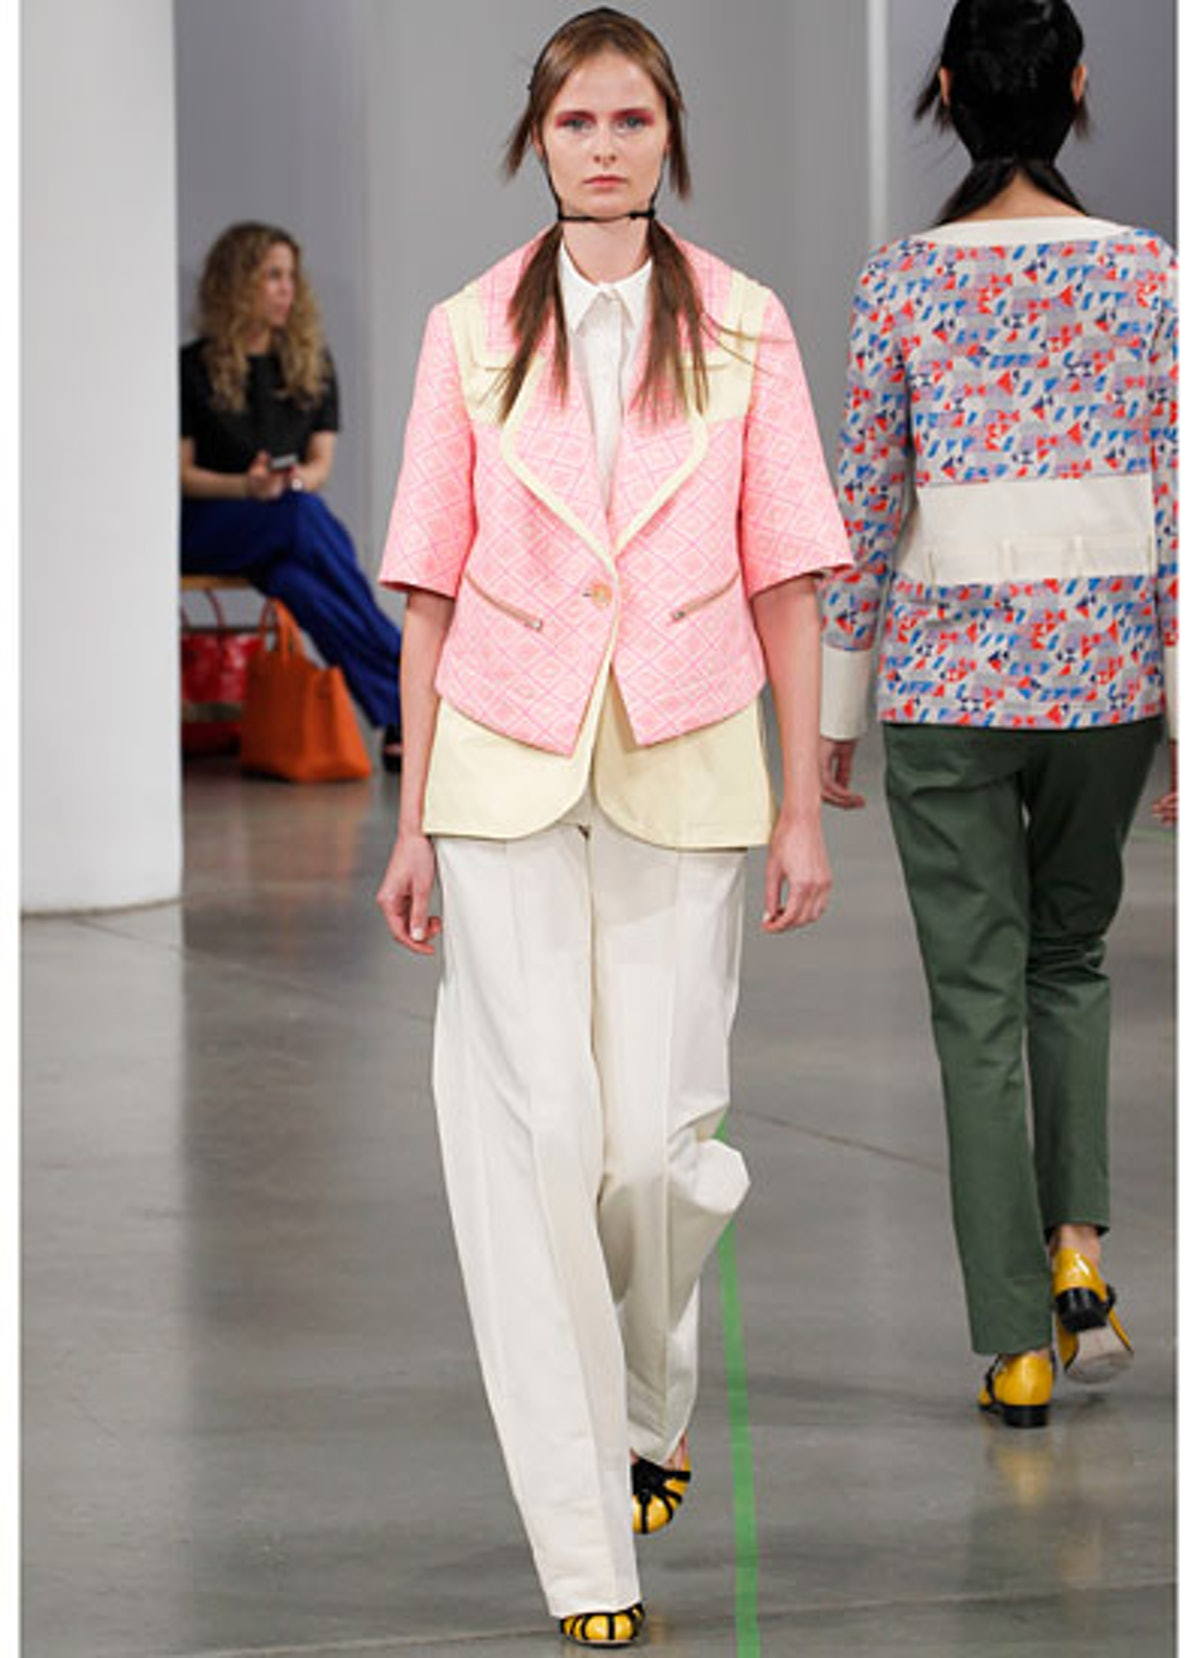 fass-creatures-of-the-wind-spring-2013-runway-11-v.jpg